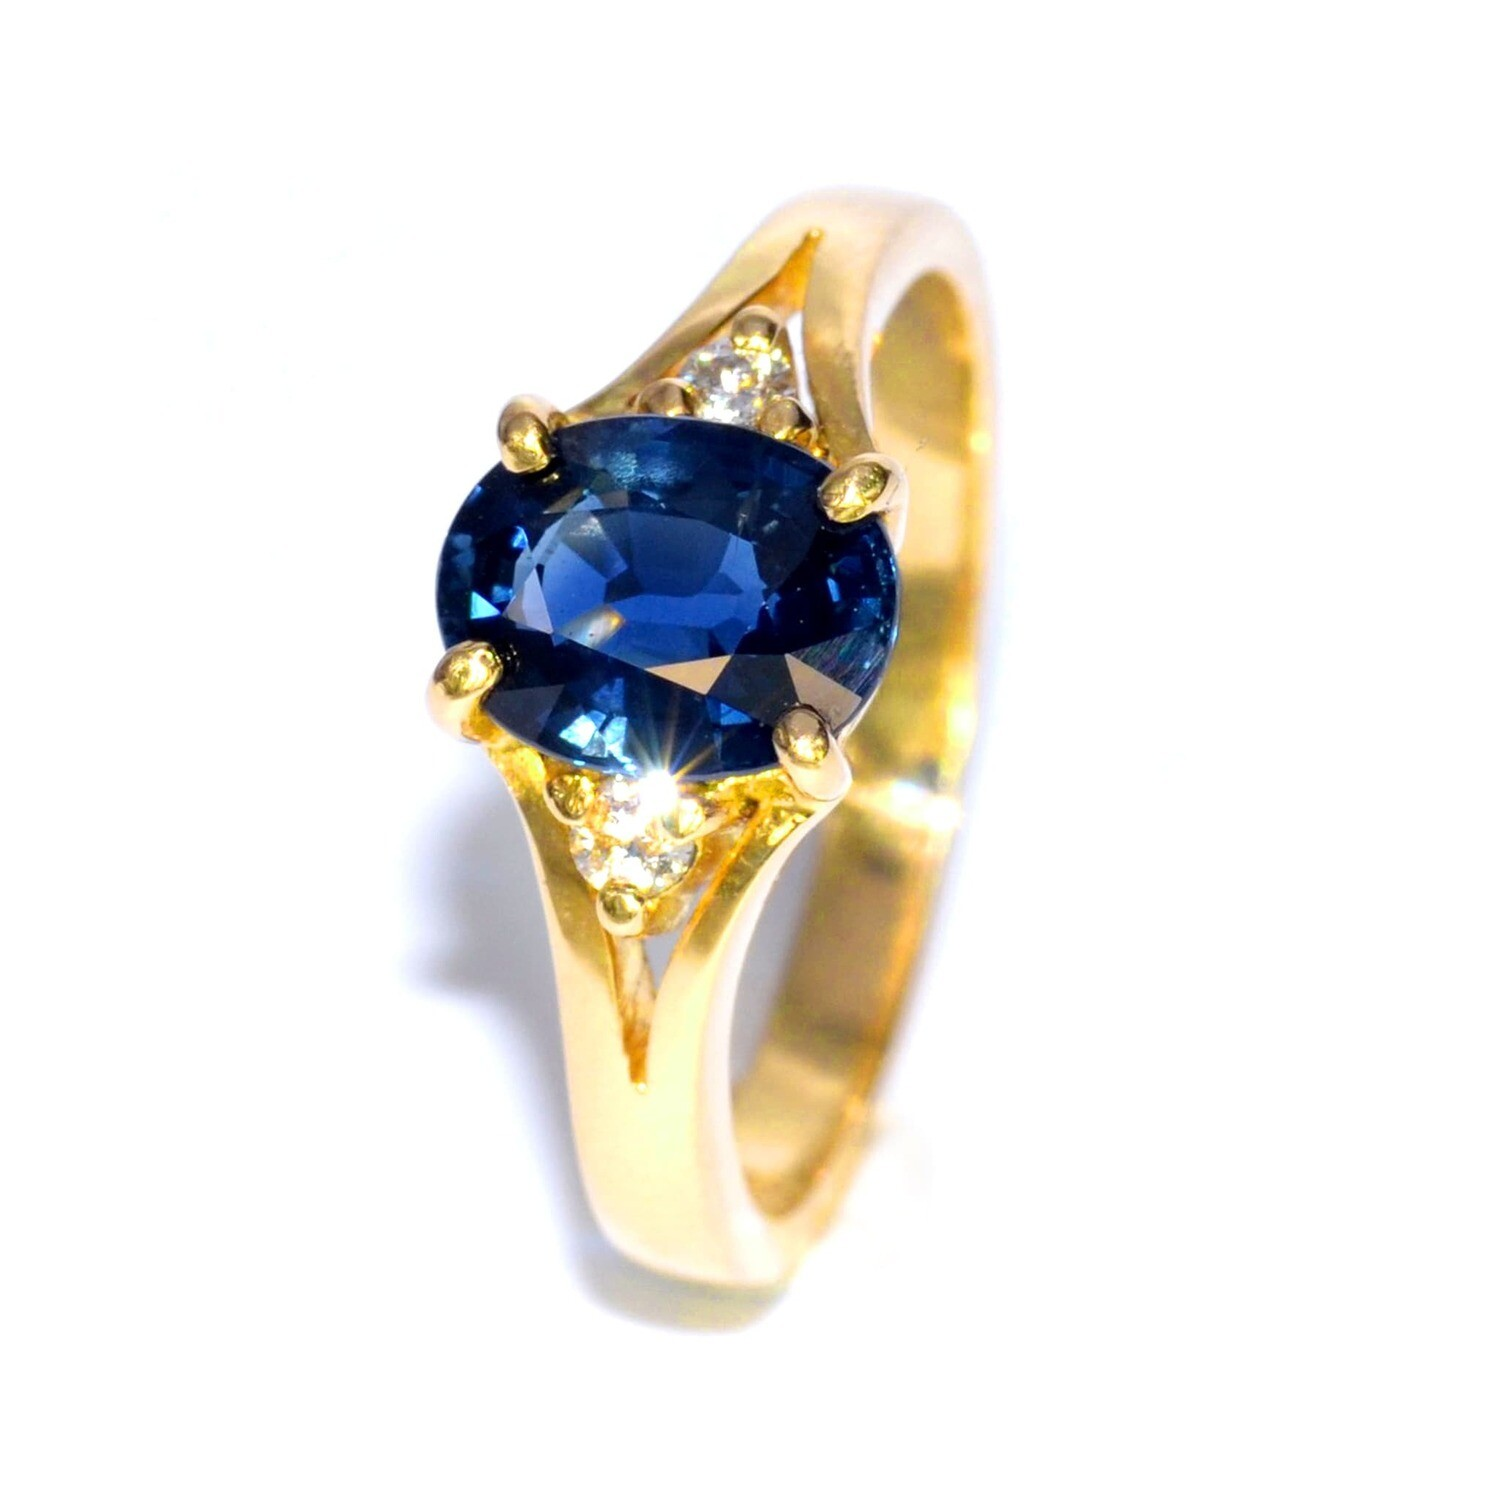 18k Yellow Gold Ring with Blue Sapphire 1.84 carat and Diamond 0.075 total carat weight